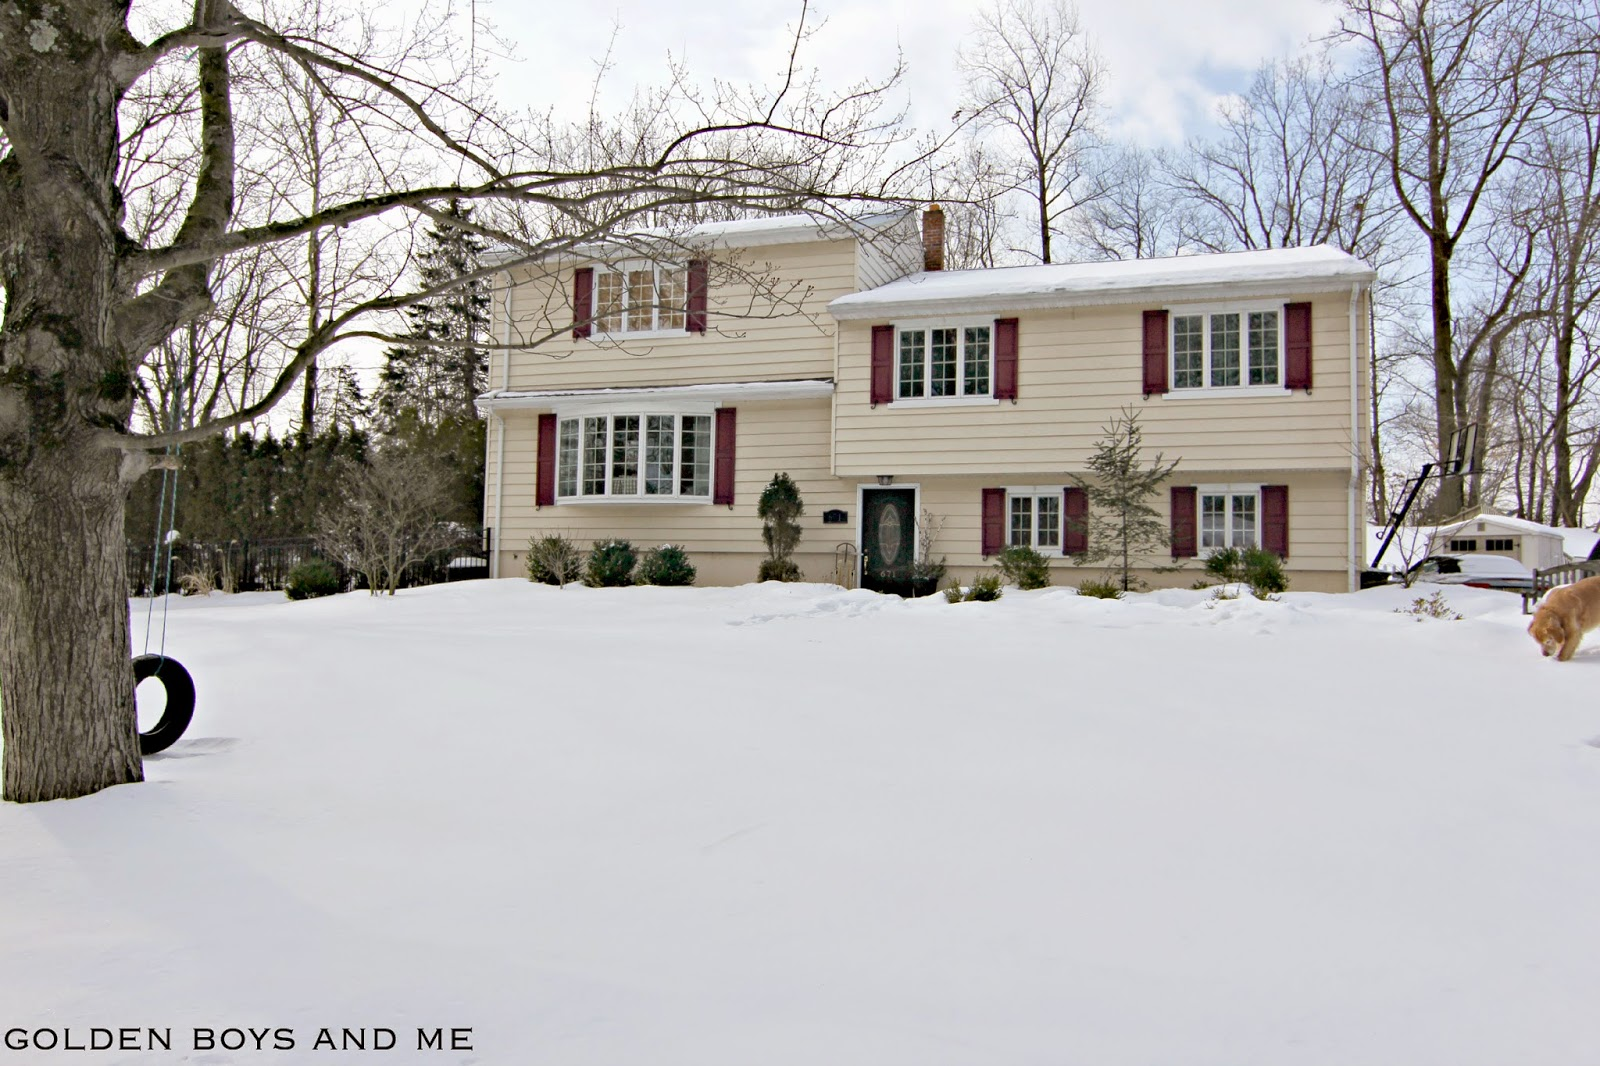 Split level suburban home in snow-www.goldenboysandme.com